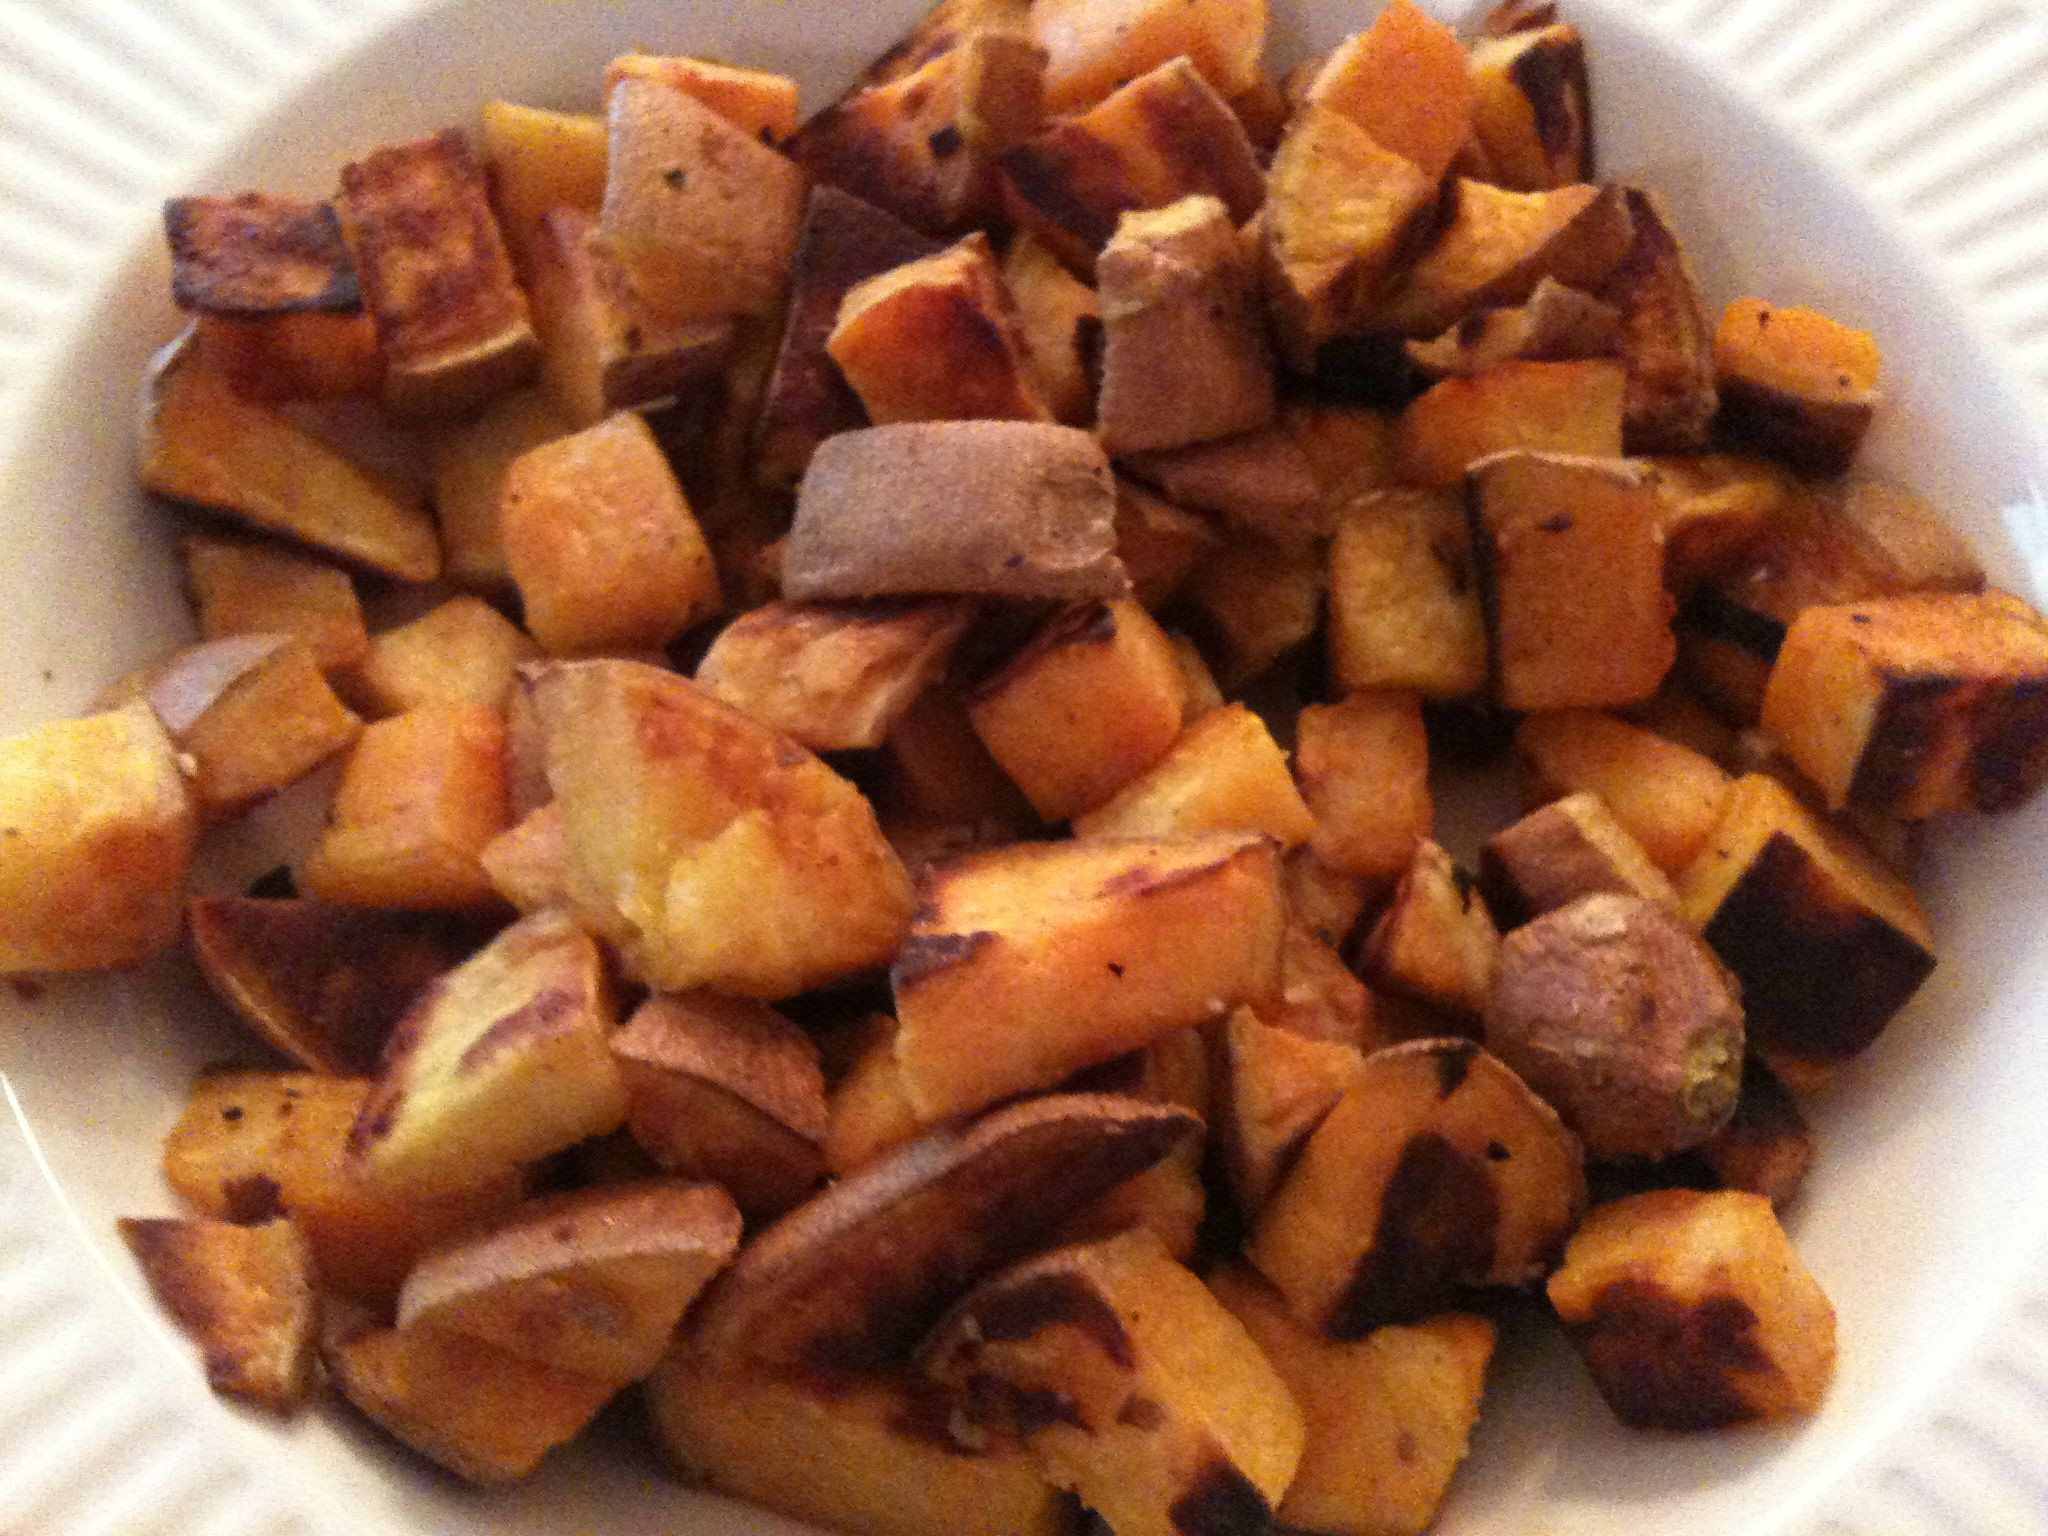 Baked Sweet Potato Cubes  baked sweet potatoes cubed Peter K Fitness